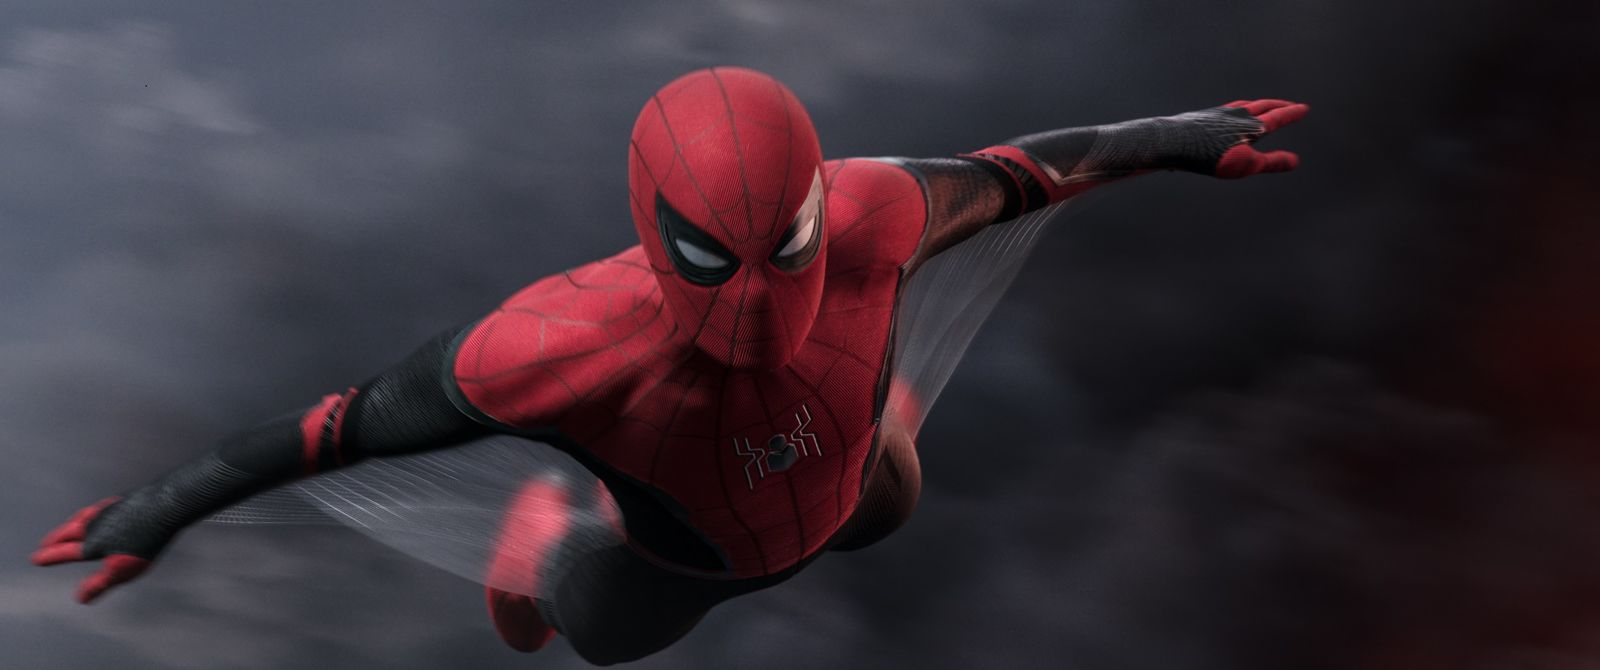 {&nbsp;}Spider-Man in Columbia Pictures' SPIDER-MAN: ™ FAR FROM HOME' (Photo: Sony)<p></p>